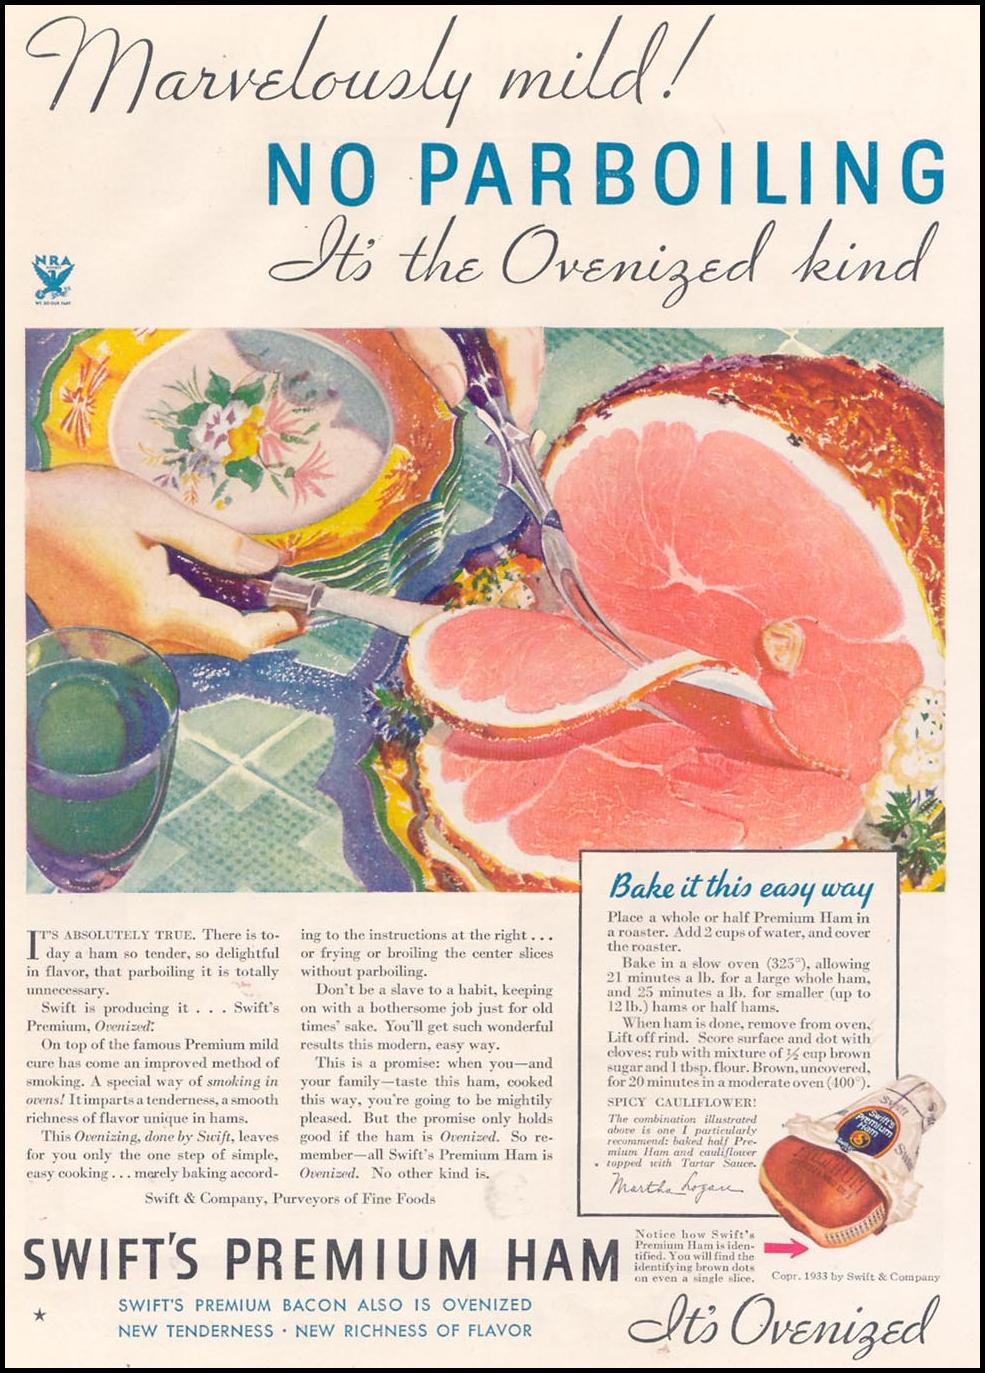 SWIFT'S PREMIUM HAM GOOD HOUSEKEEPING 11/01/1933